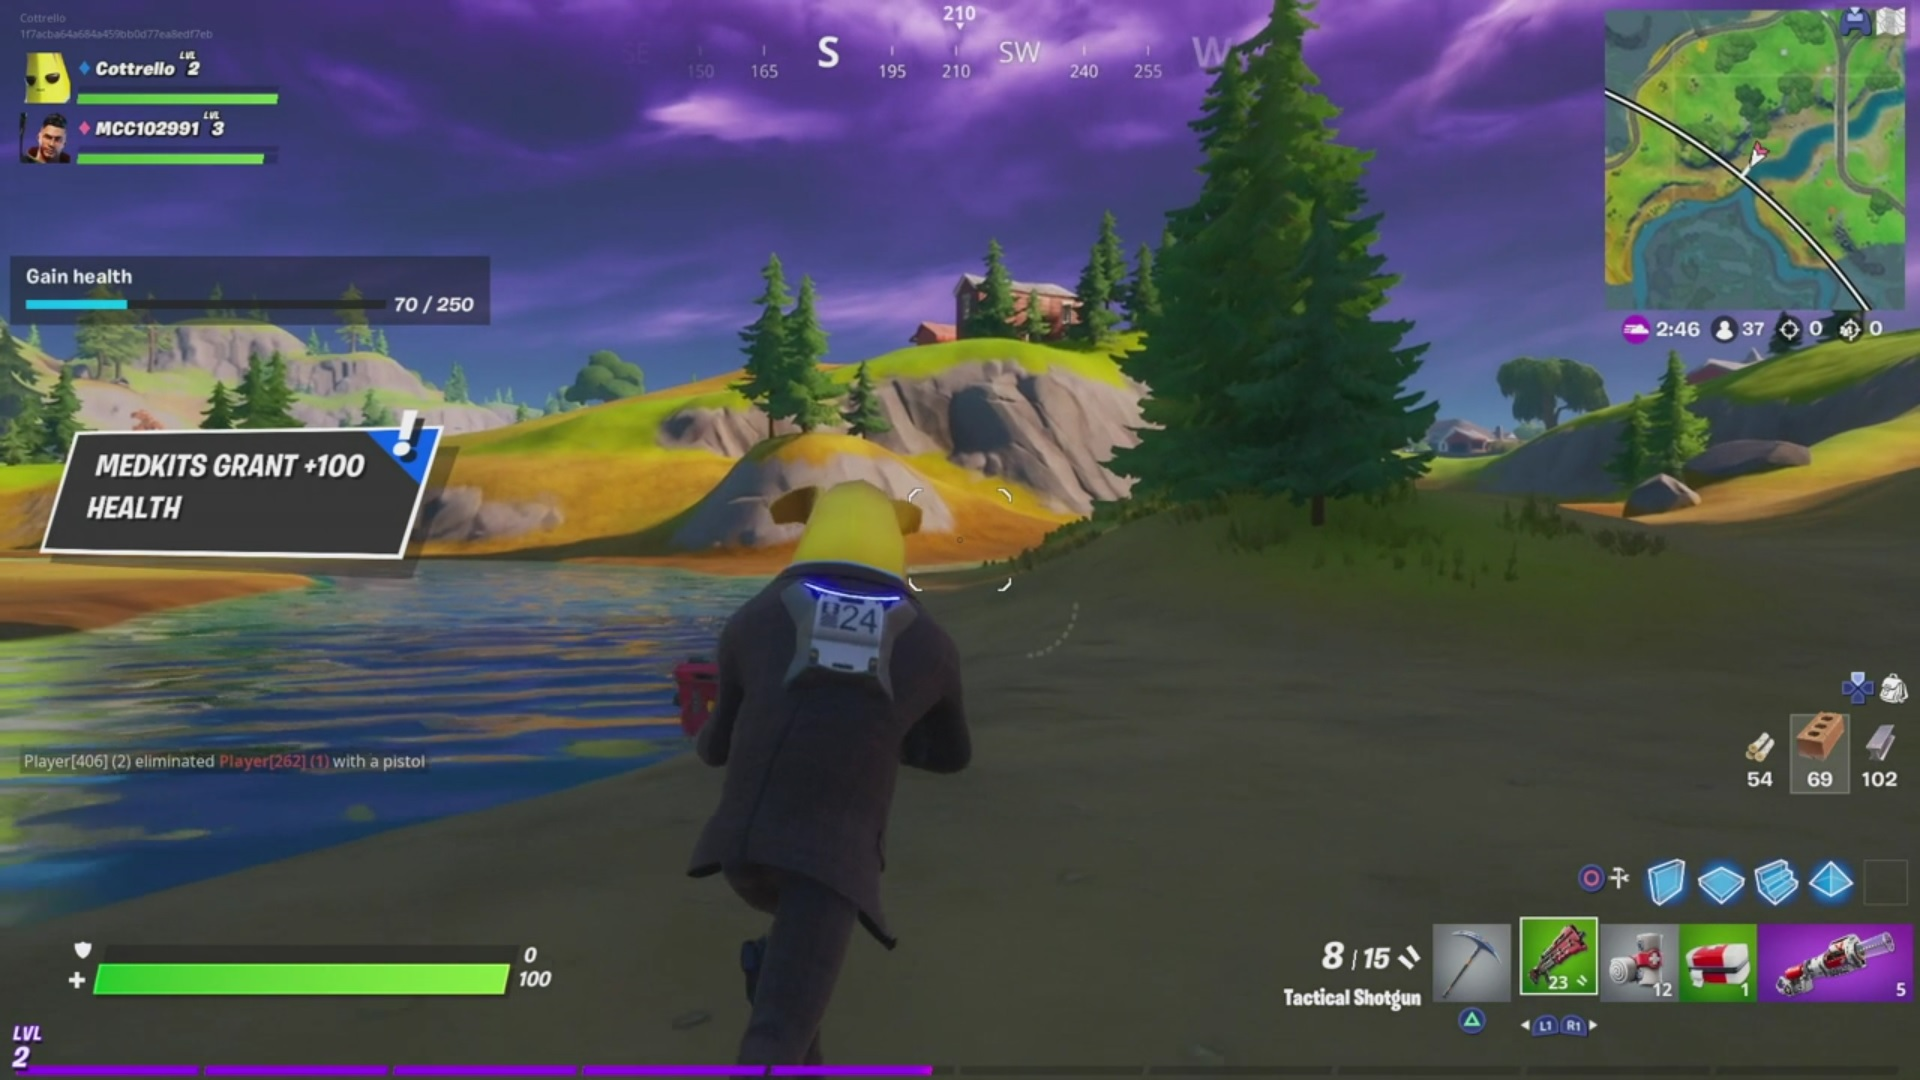 Watch Fortnite Chapter 2 Season 2 Gameplay With Cottrello Games Prime Video